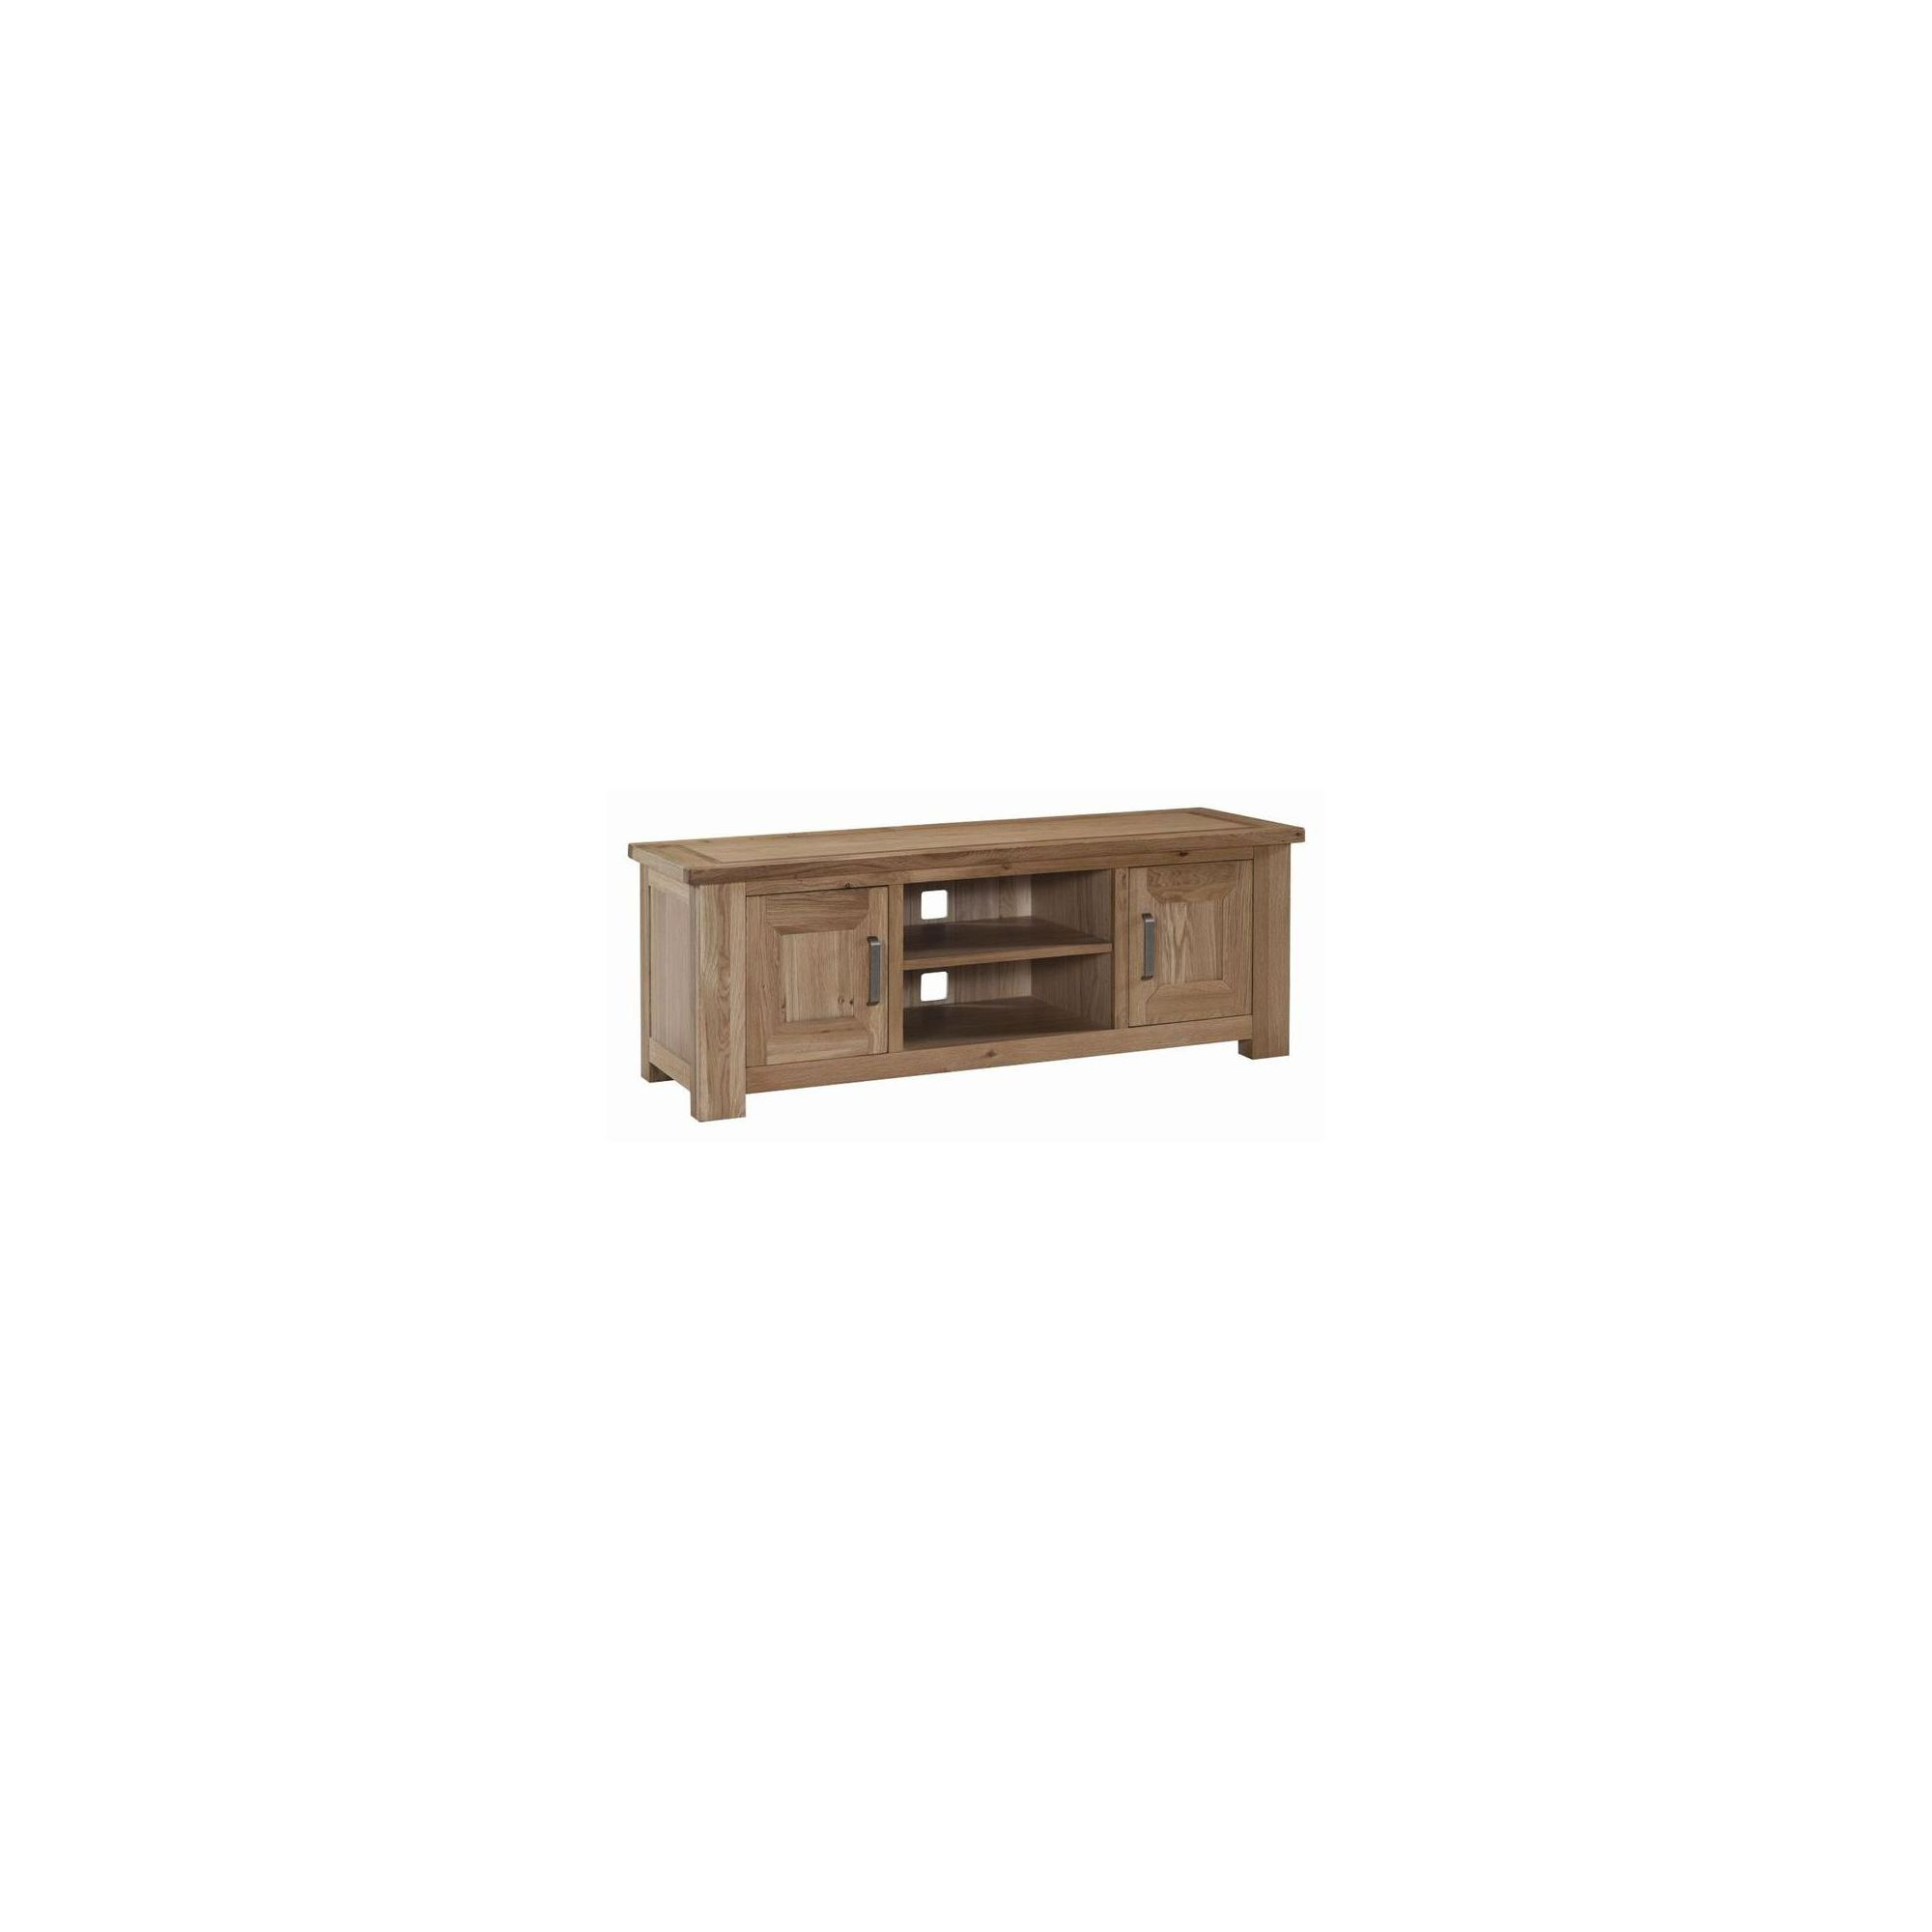 Kelburn Furniture Lyon 133cm TV Stand in Light Oak Matt Lacquer at Tesco Direct